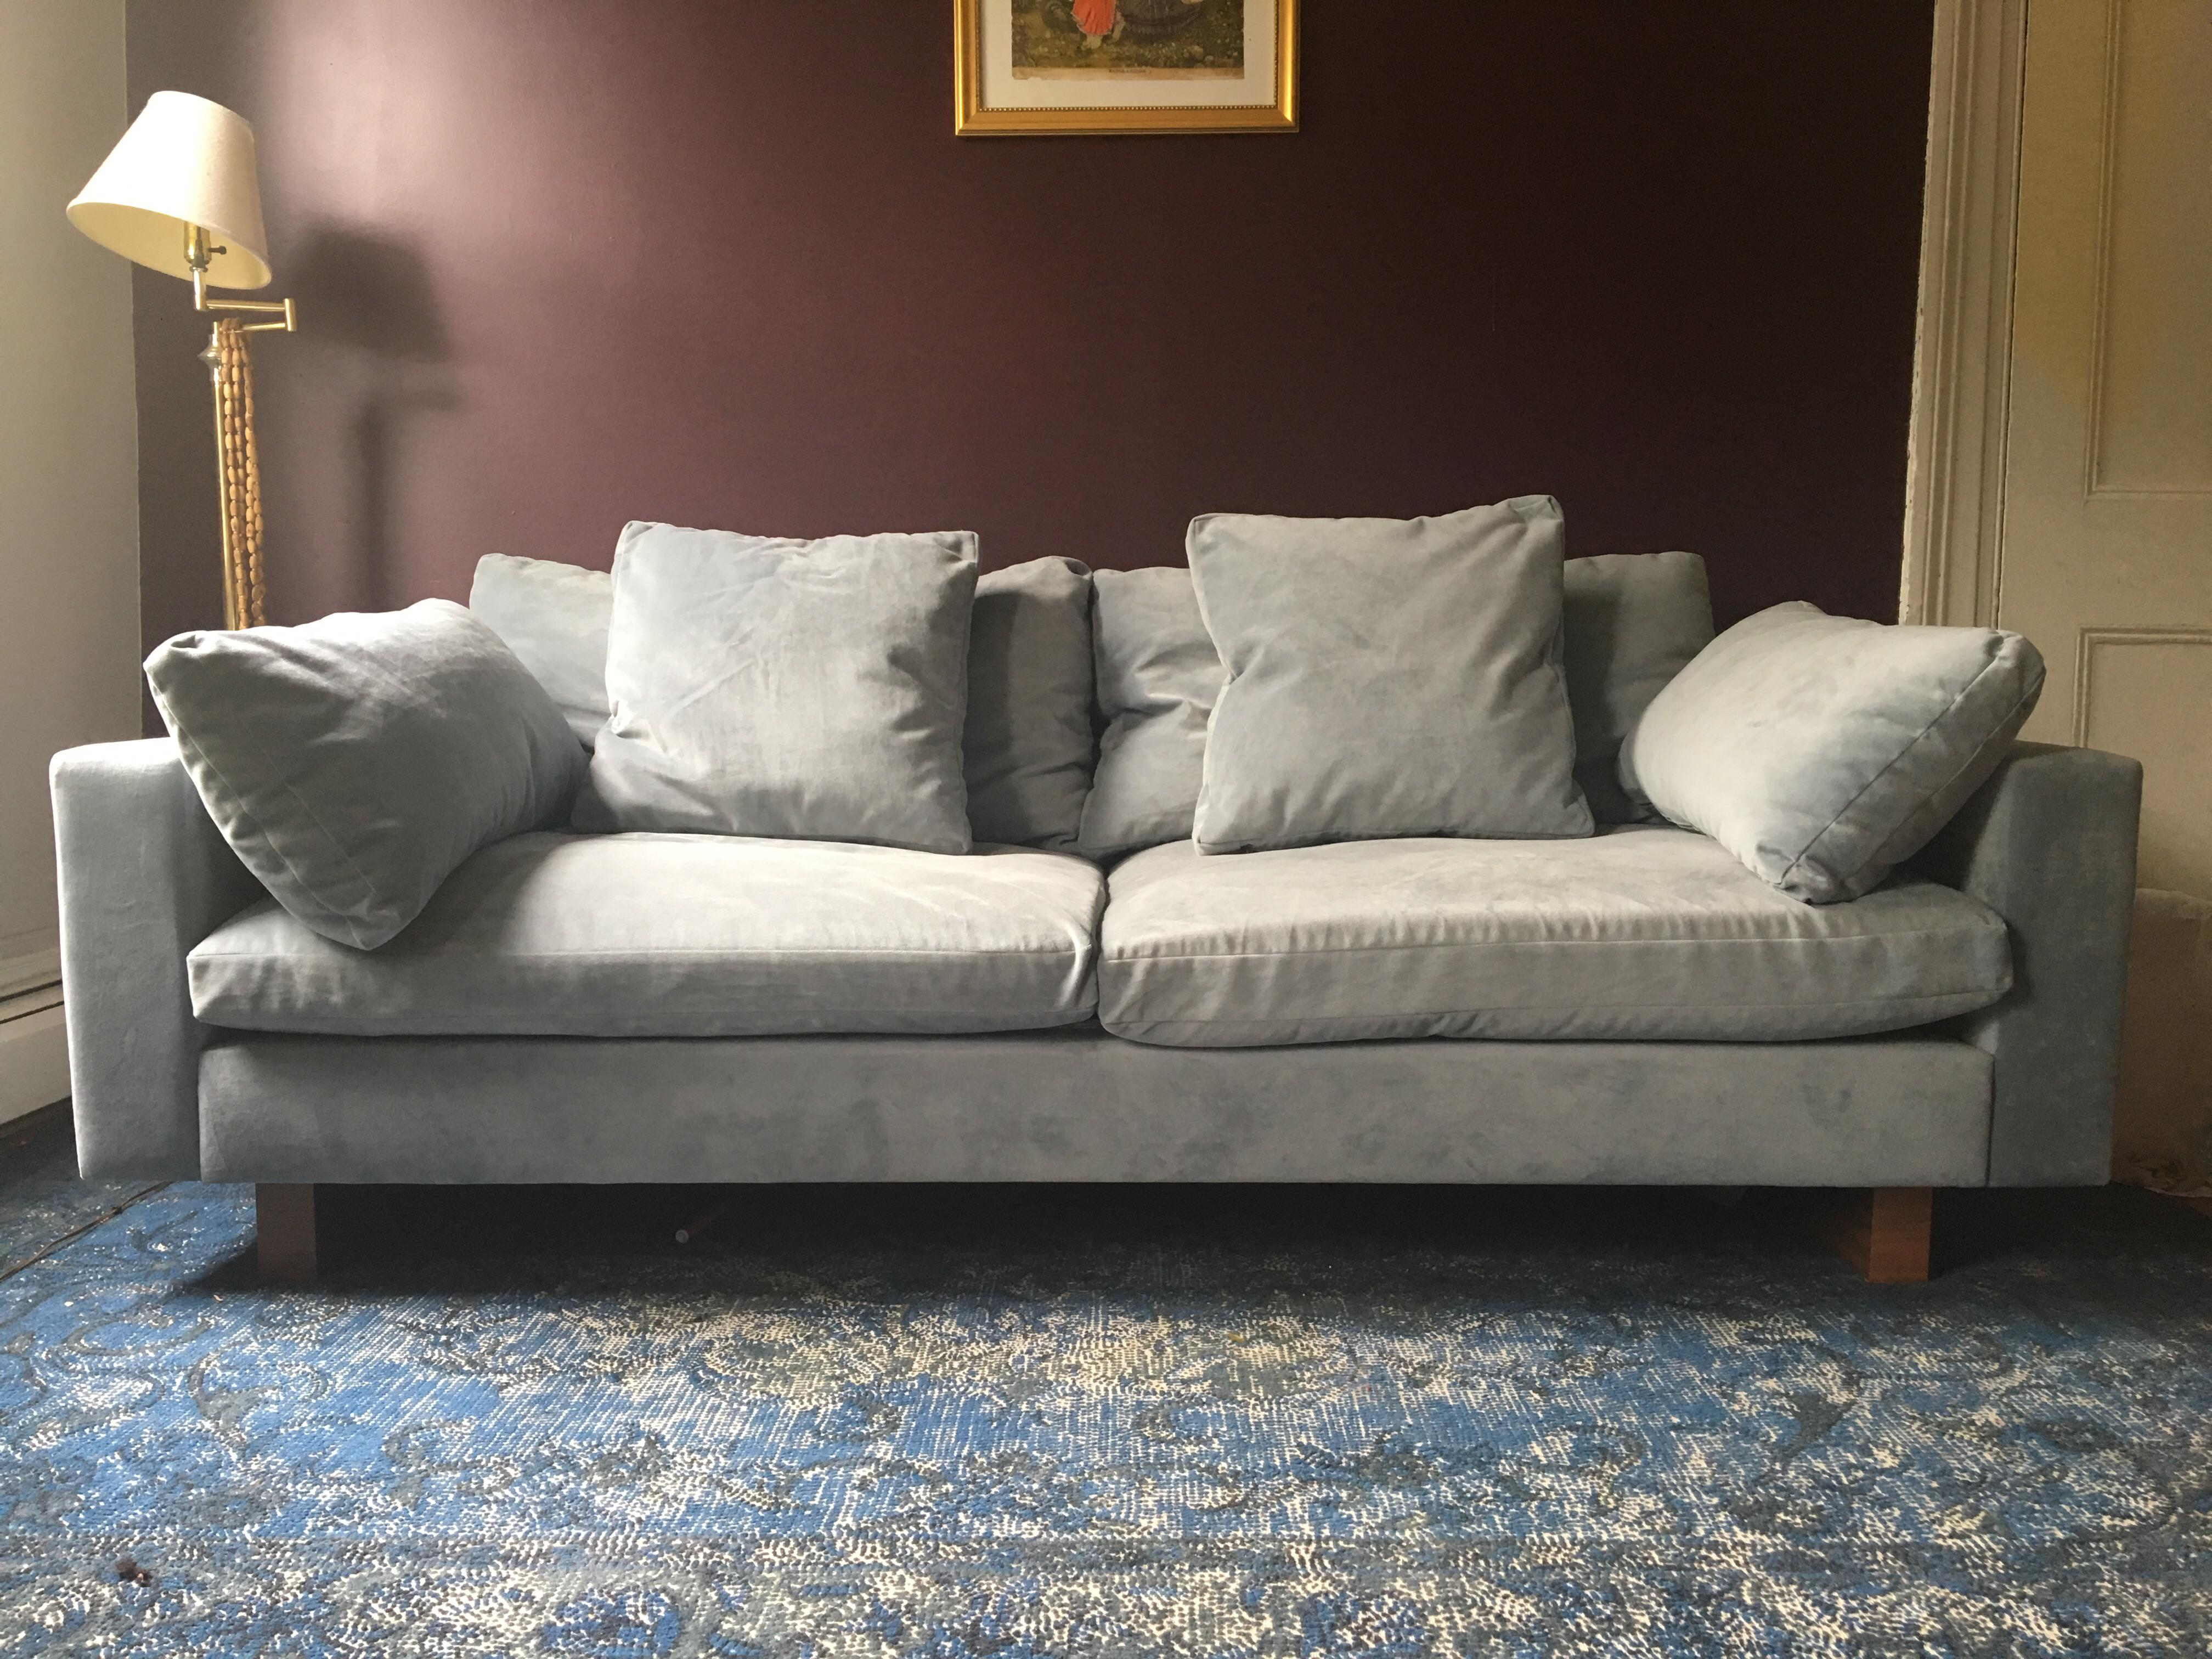 Superbe Purchased This Sofa In Feb. Had It Delivered In May And Now Moving Overseas  And